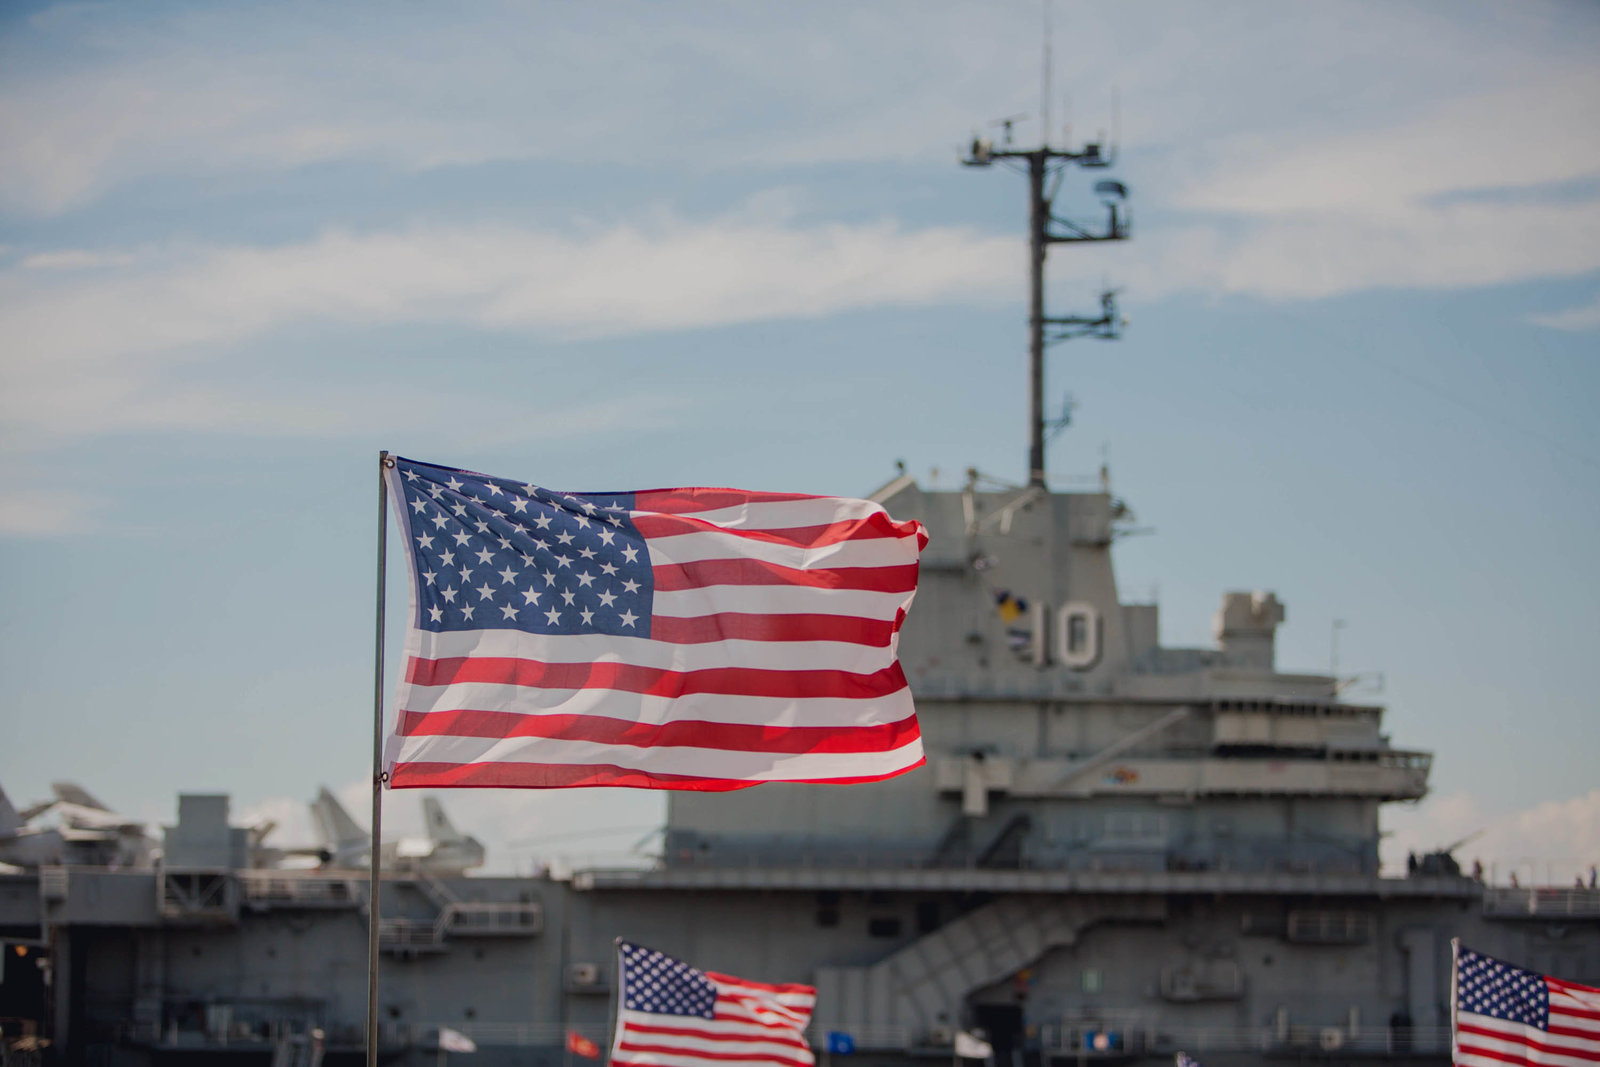 uss-yorktown-ship-patriots-point-flag-charleston-sc-kate-timbers-photography-1042